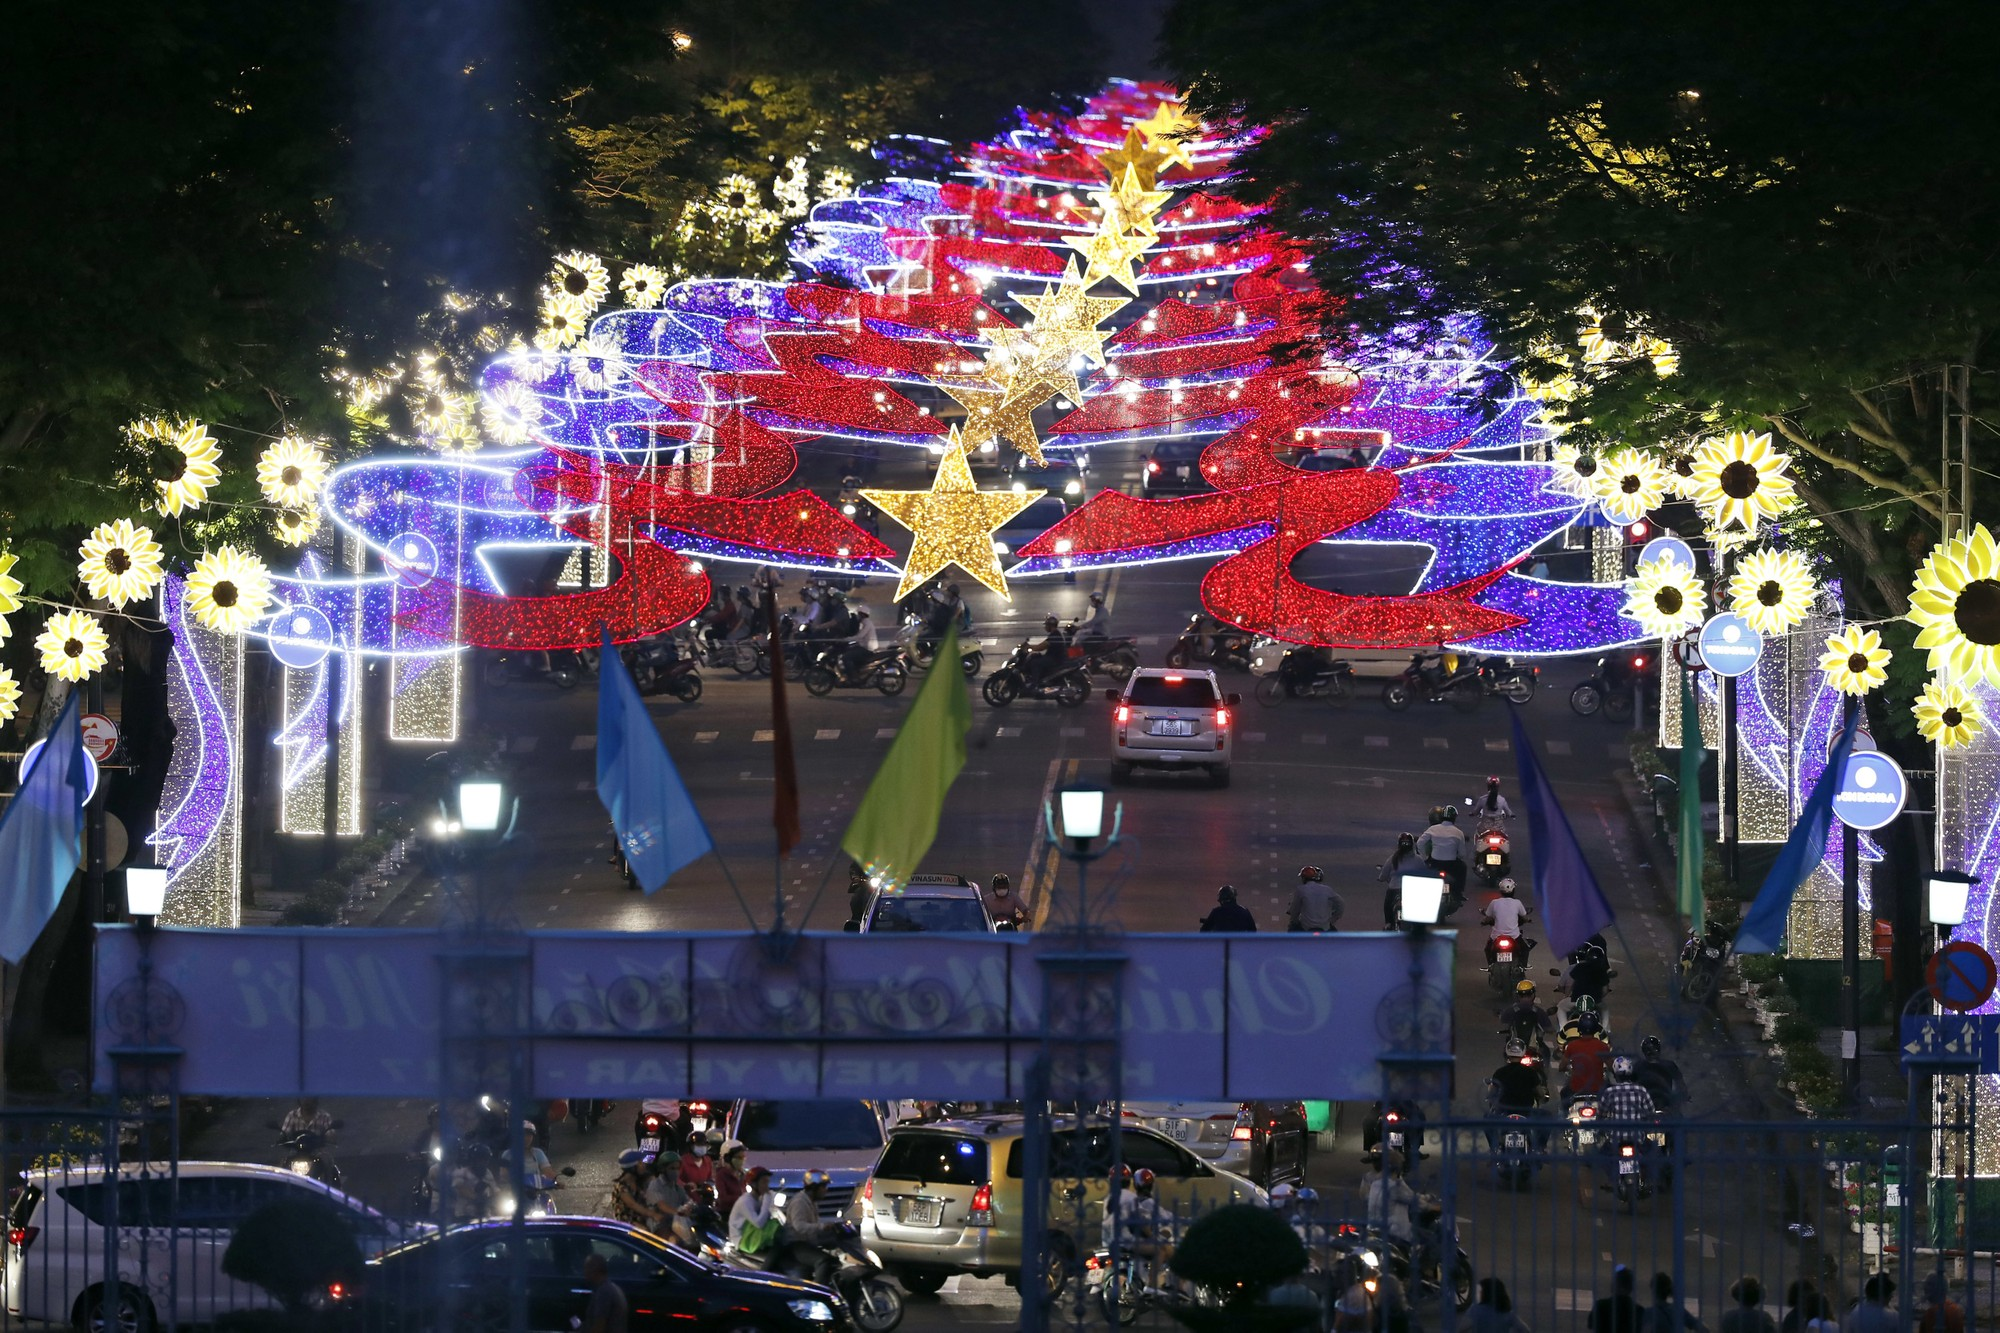 A view of the lights for the upcoming lunar new year's celebration as seen from the Independence Palace, Friday, Jan. 13, 2017 in Ho Chi Minh City, Vietnam. (AP Photo/Alex Brandon, Pool)